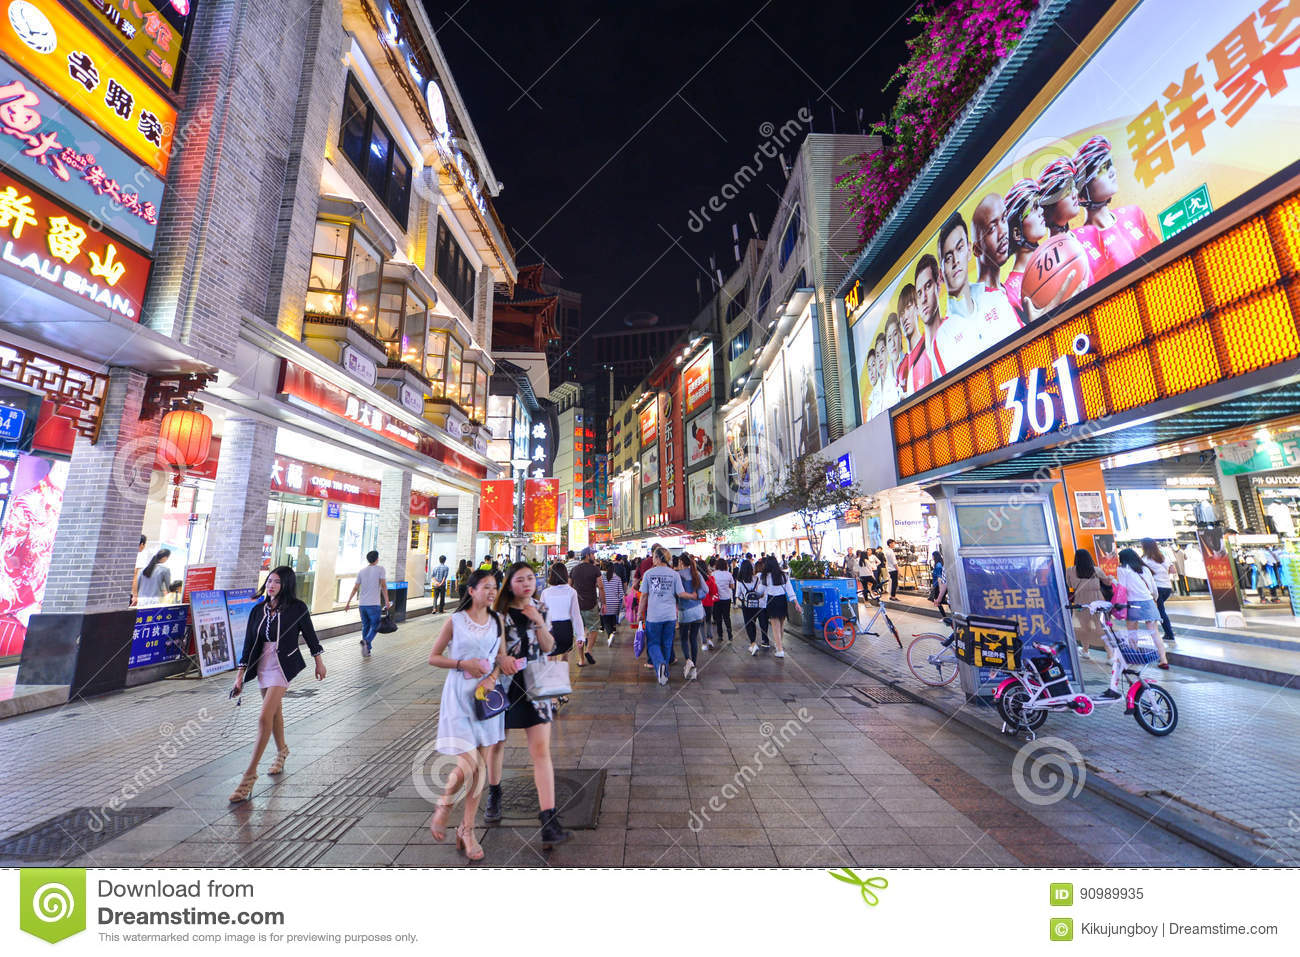 Shoppers and visitors crowd the famous Dongmen Pedestrian Street. Dongmen is a shopping area of Shenzhen